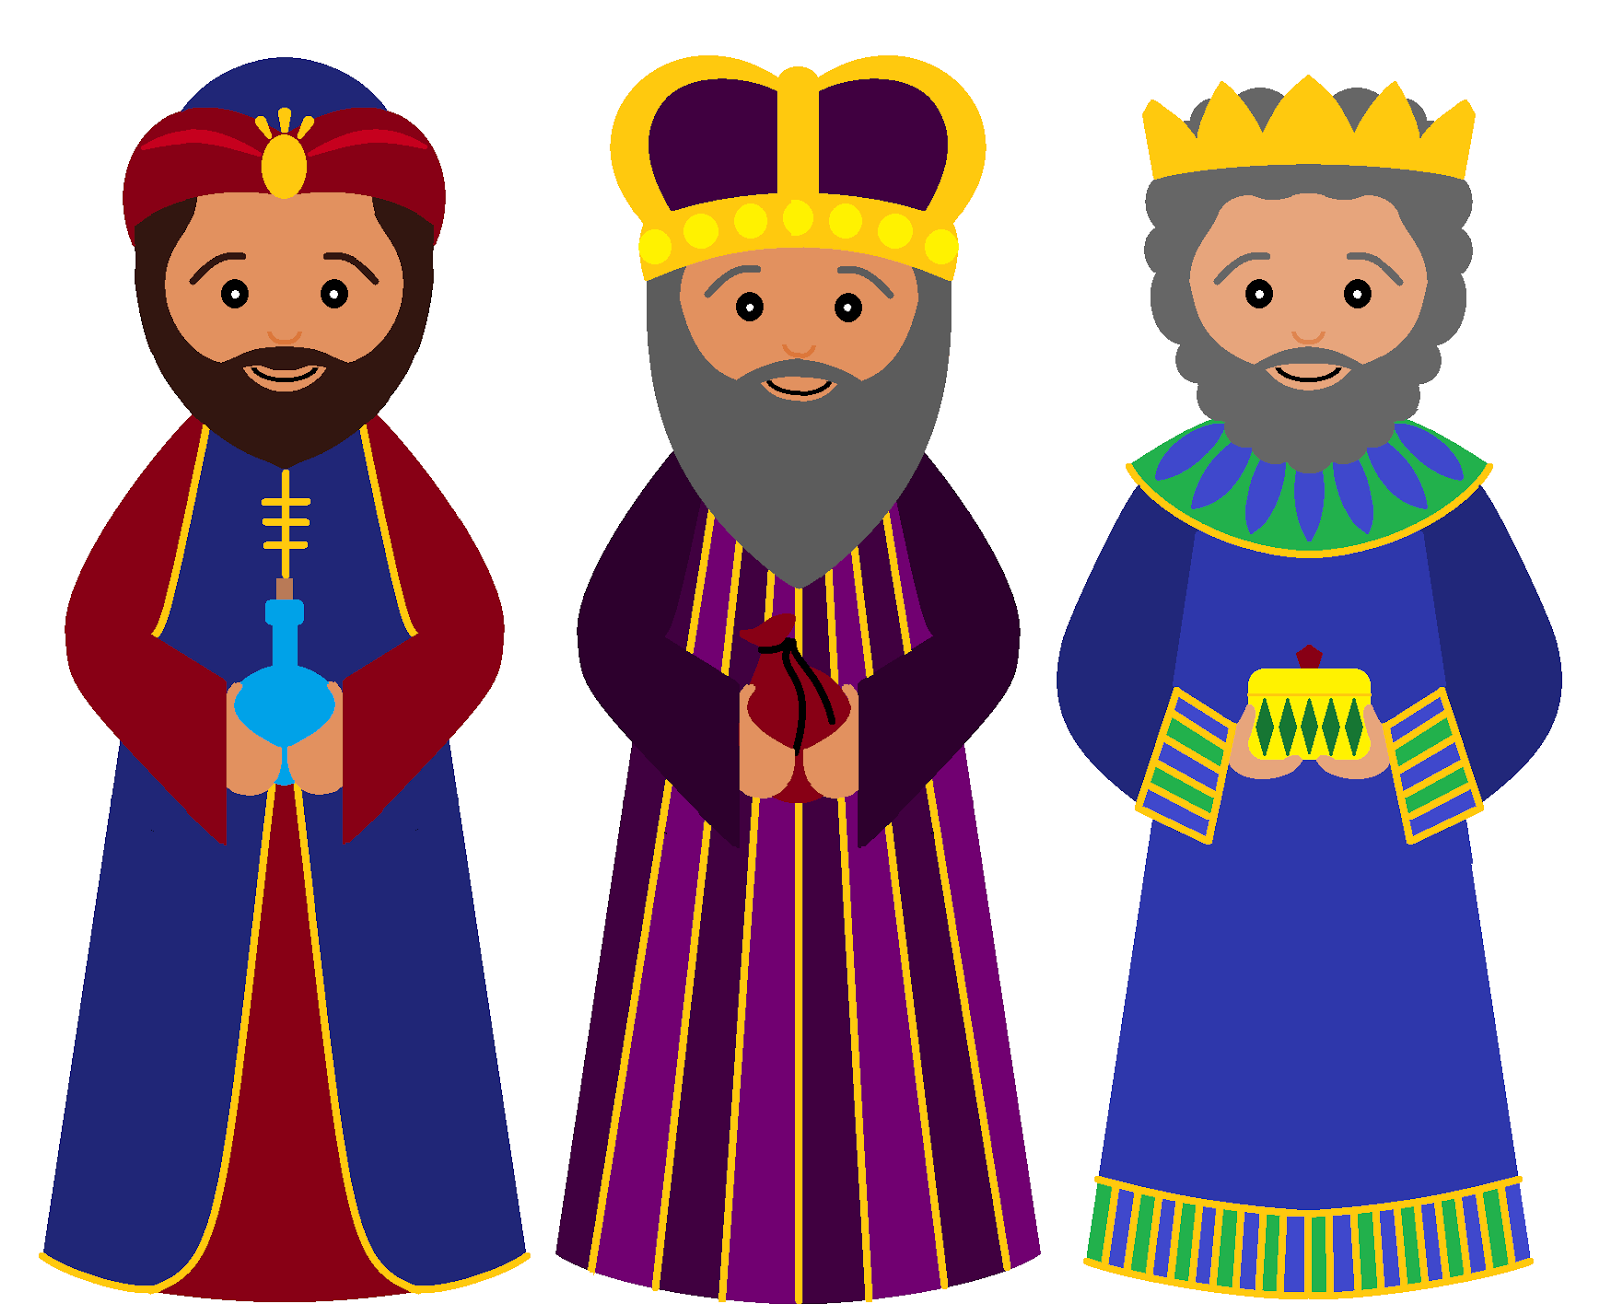 3 clipart kings. Free three wise men graphic free download